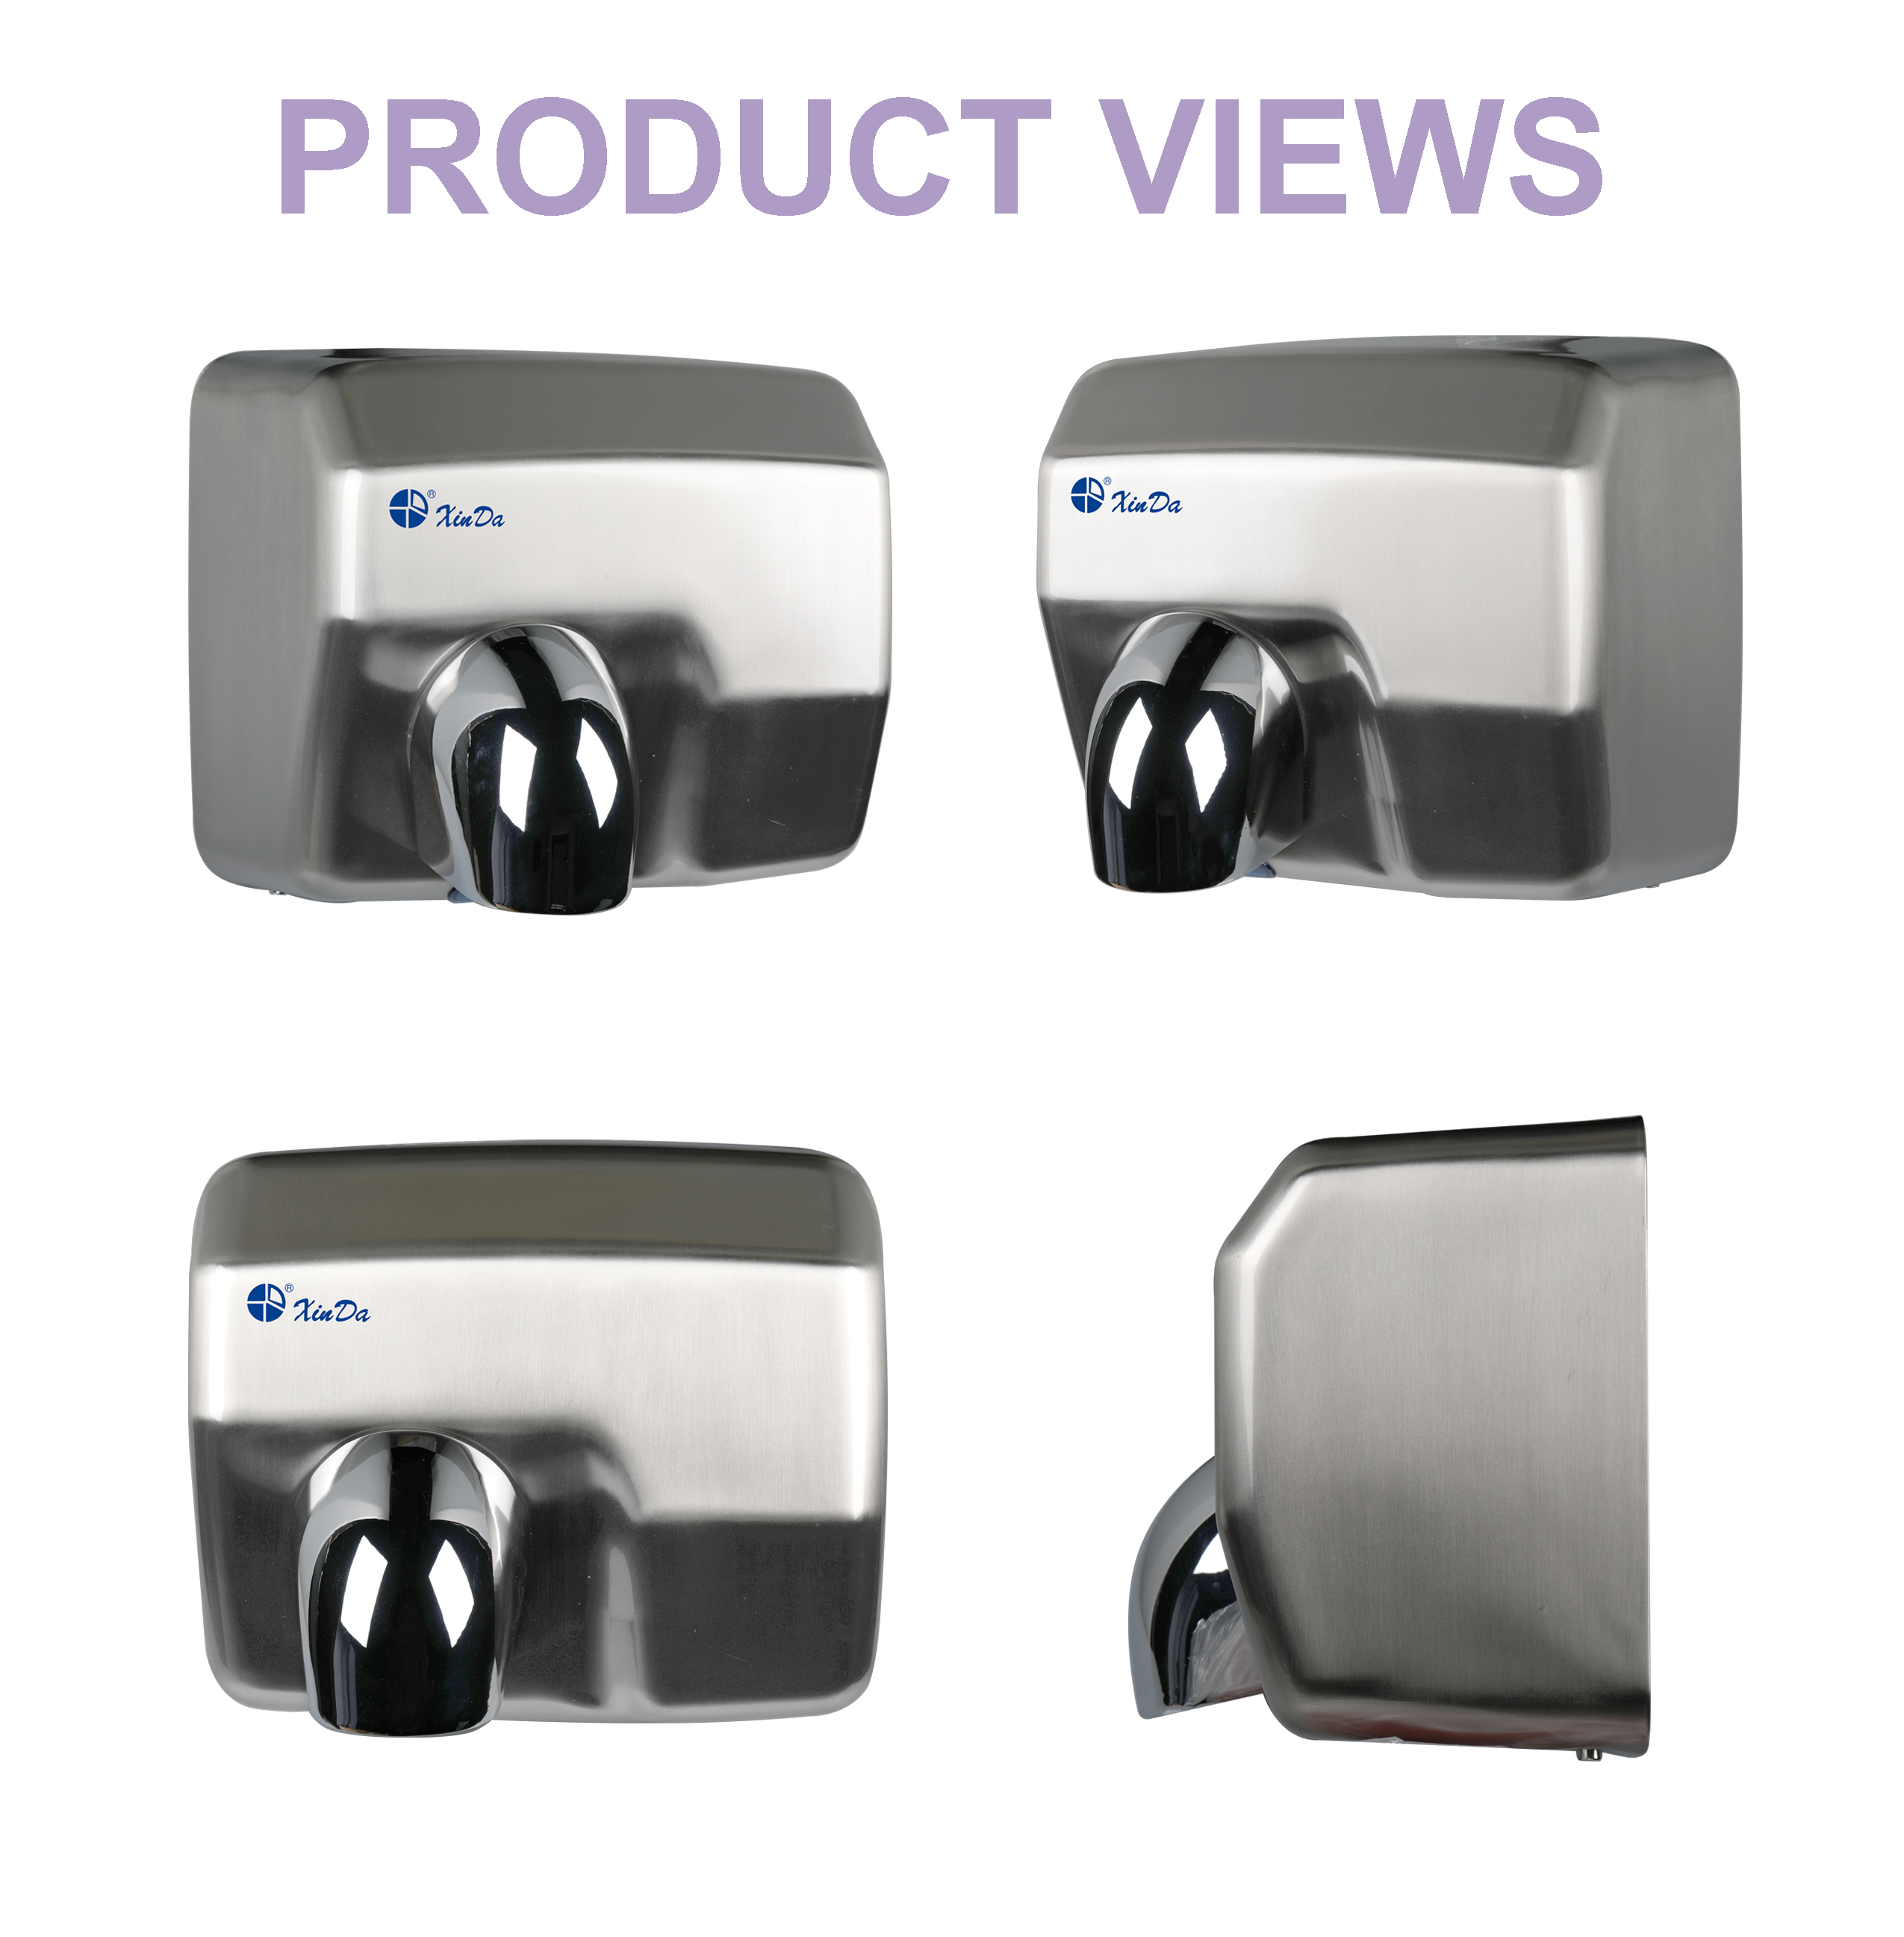 Commercial brushed hand dryer